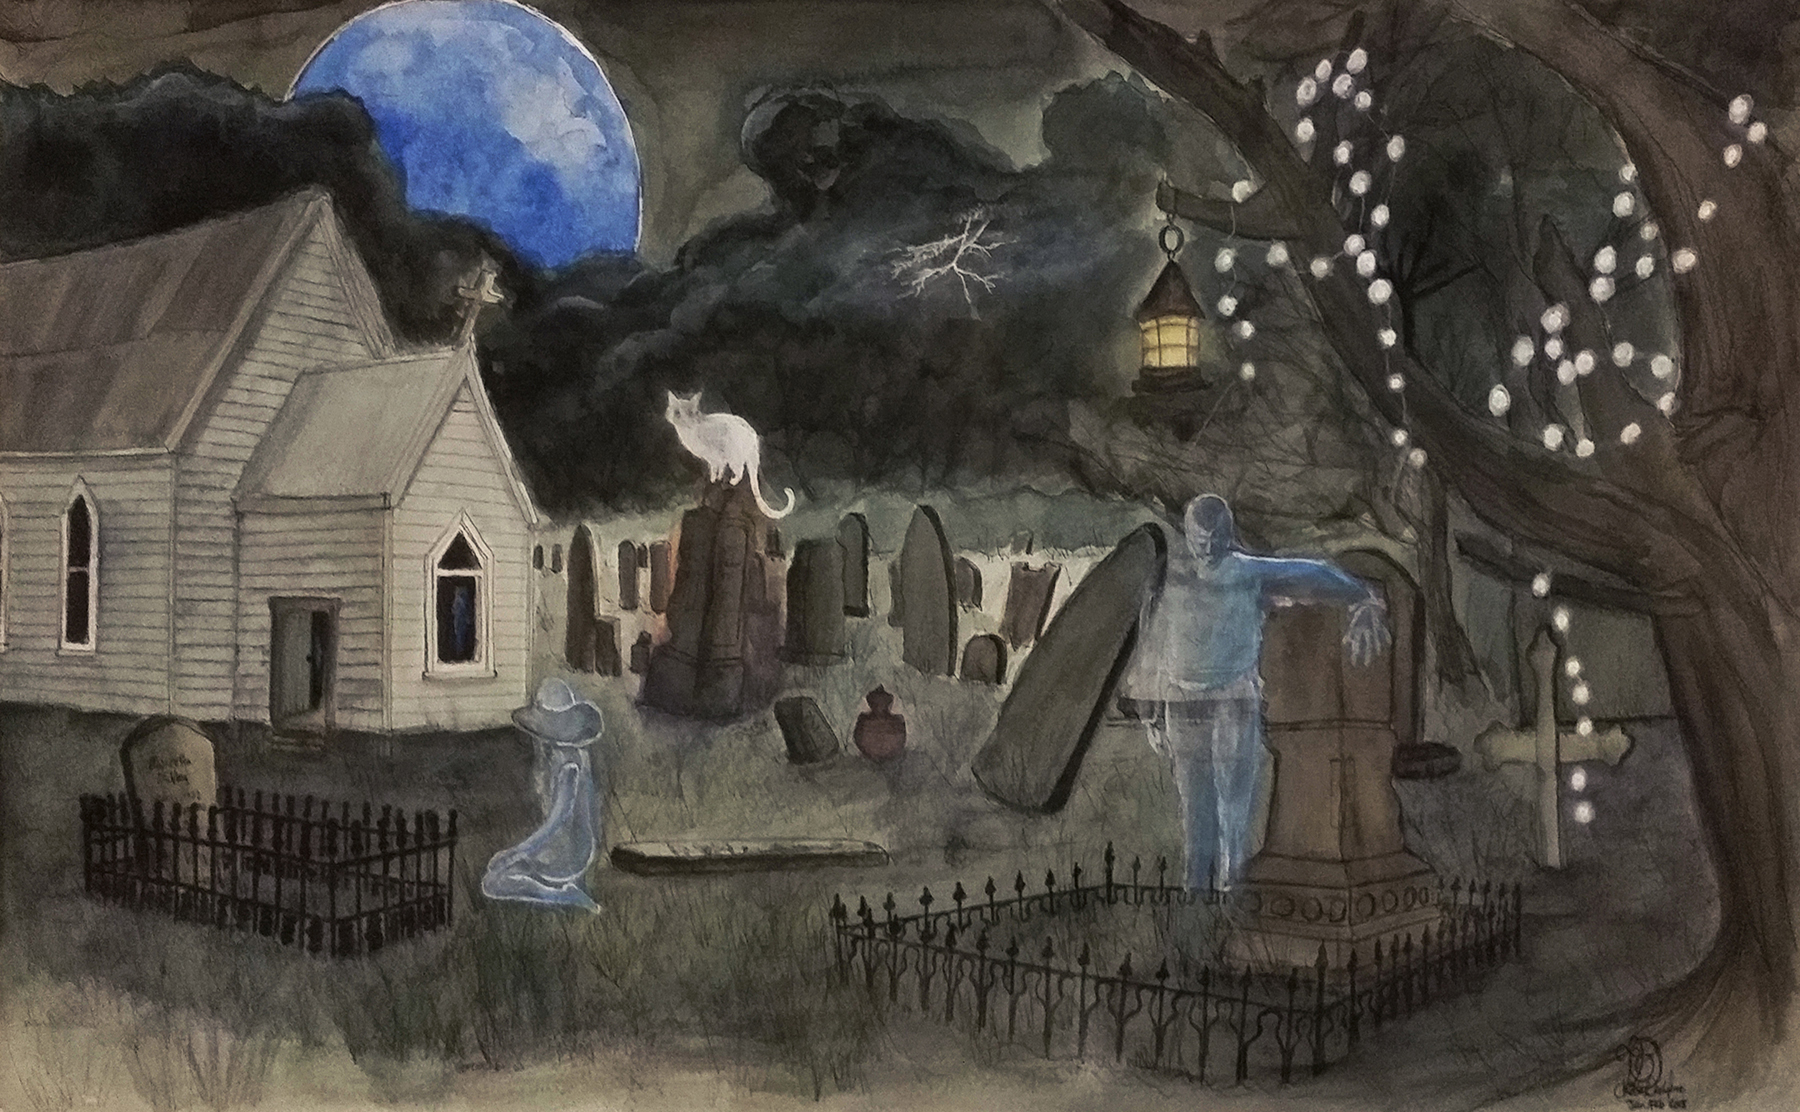 blue-moon-cemetery1smlfile1c